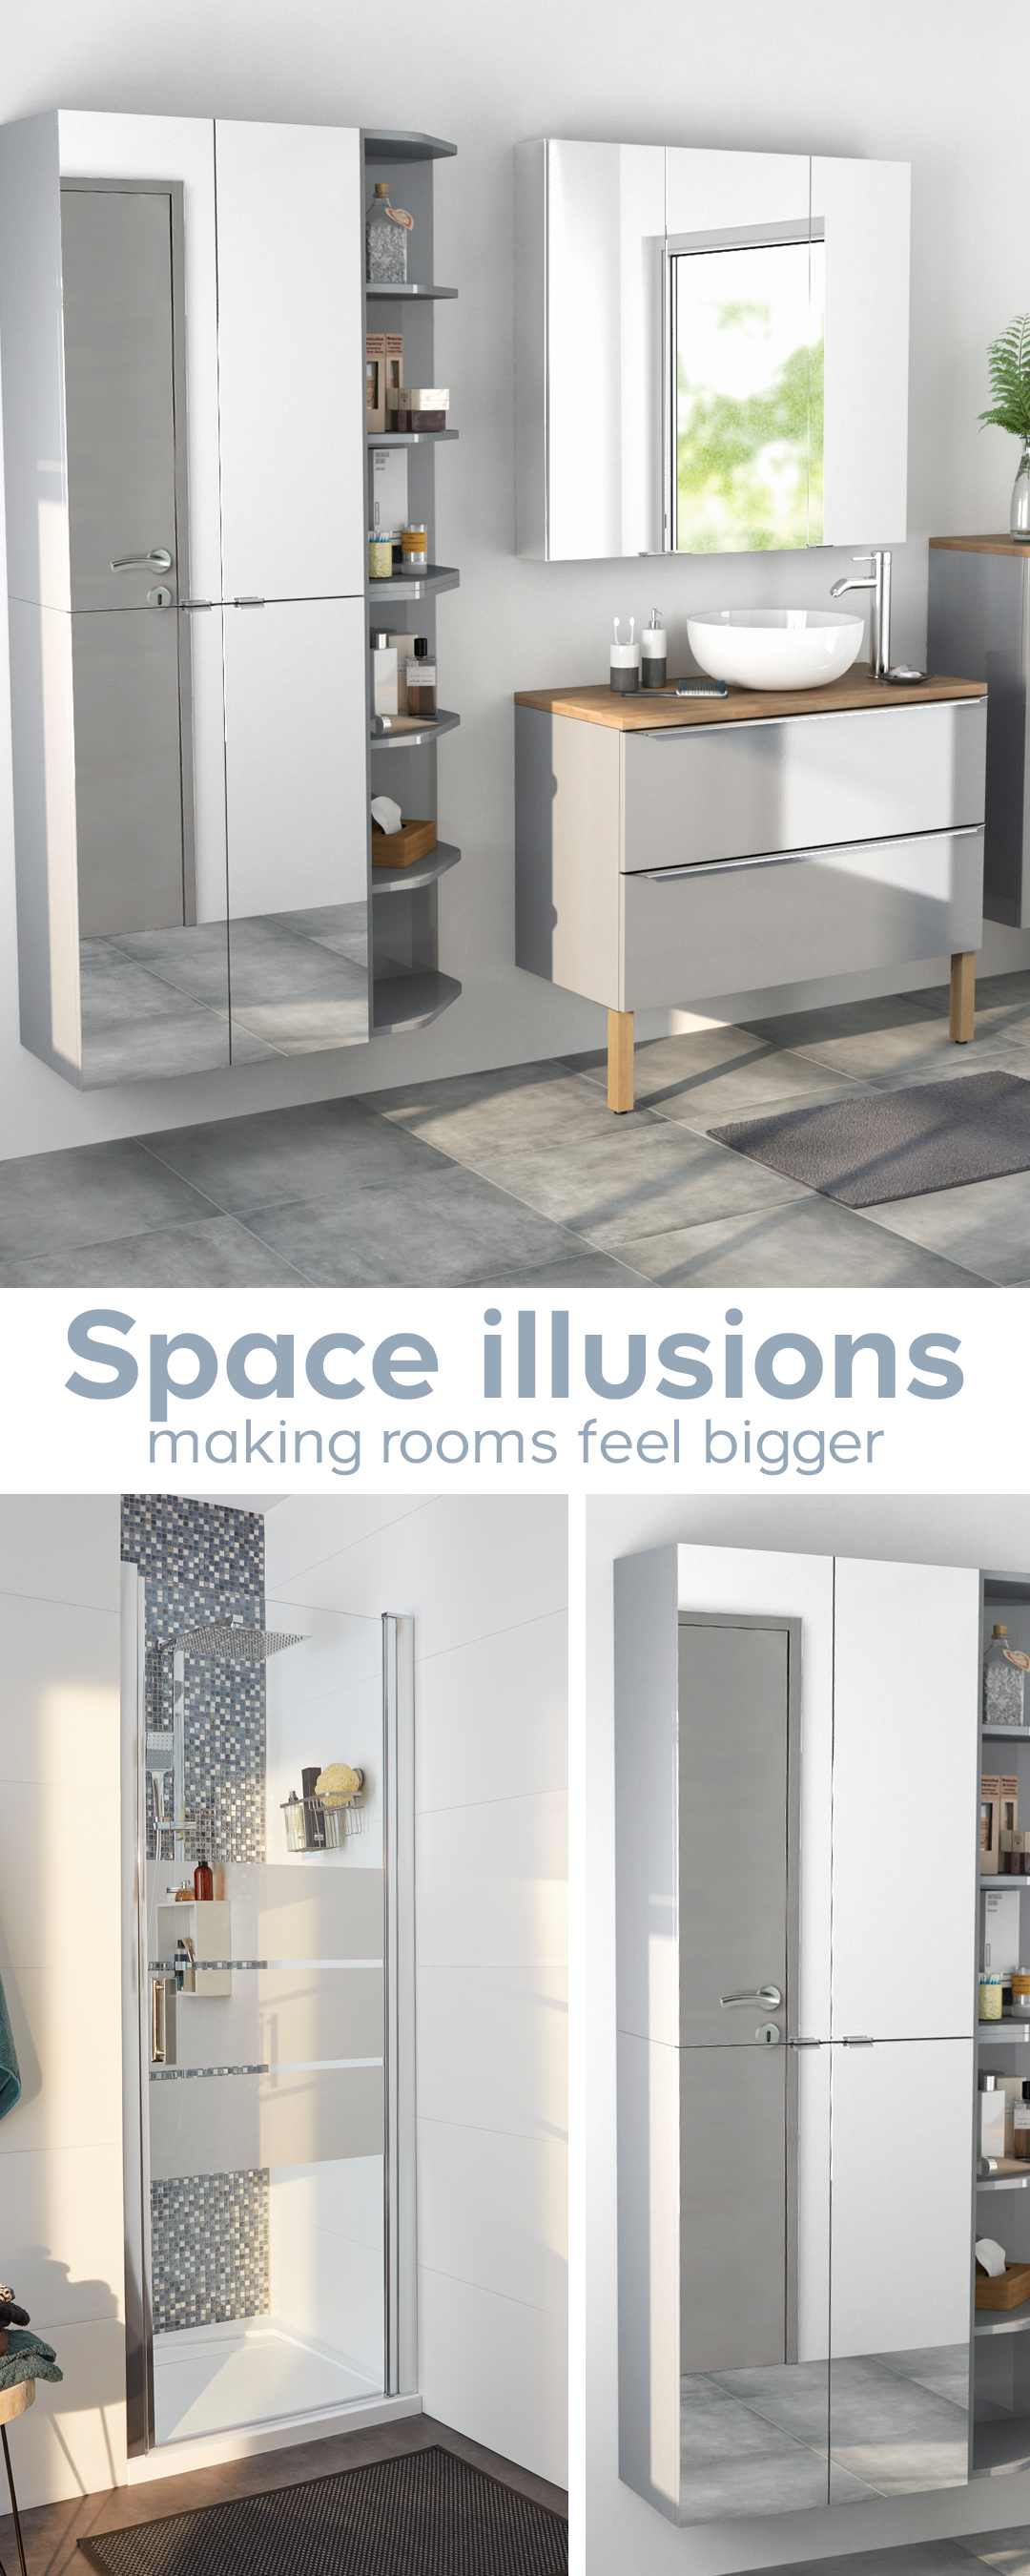 Fancy A Change Visualising Your New Bathroom Can Be Tricky How